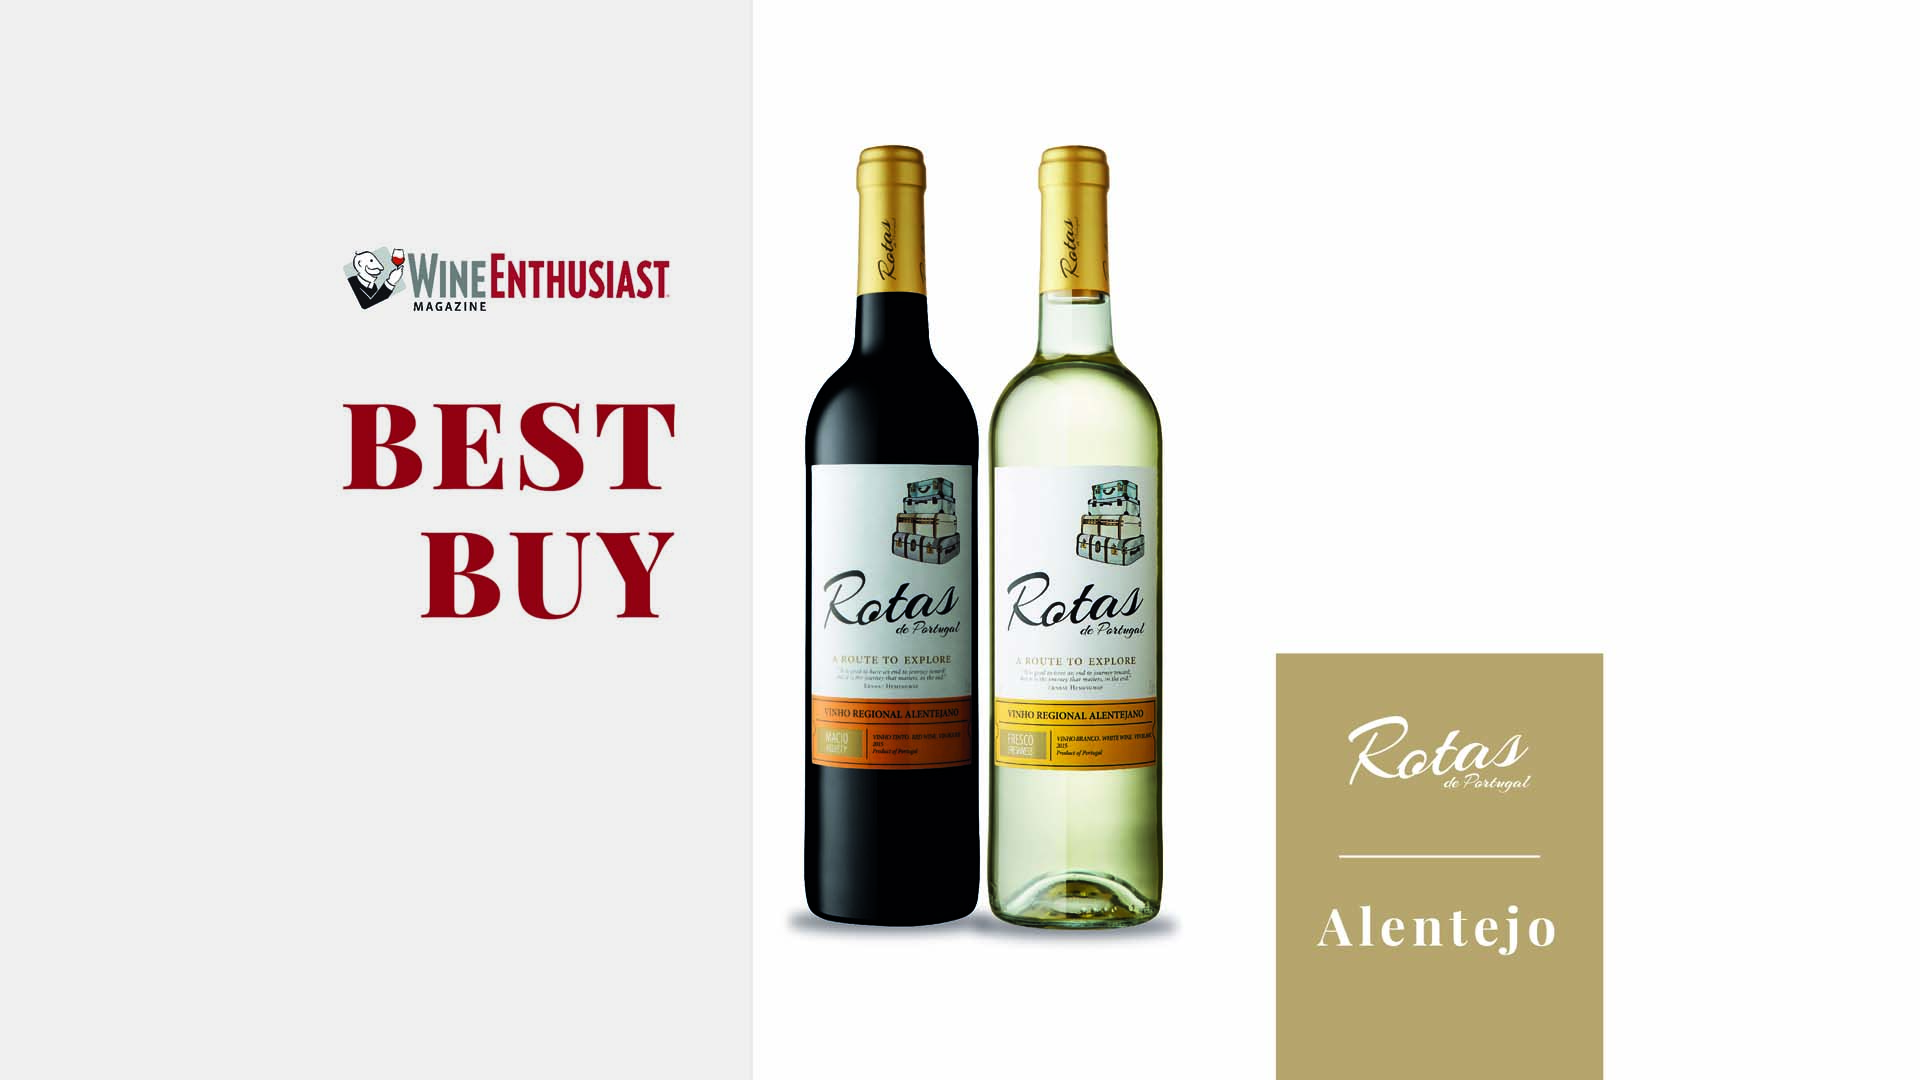 Best buy by Wine Enthusiasth for the second consecutive year!